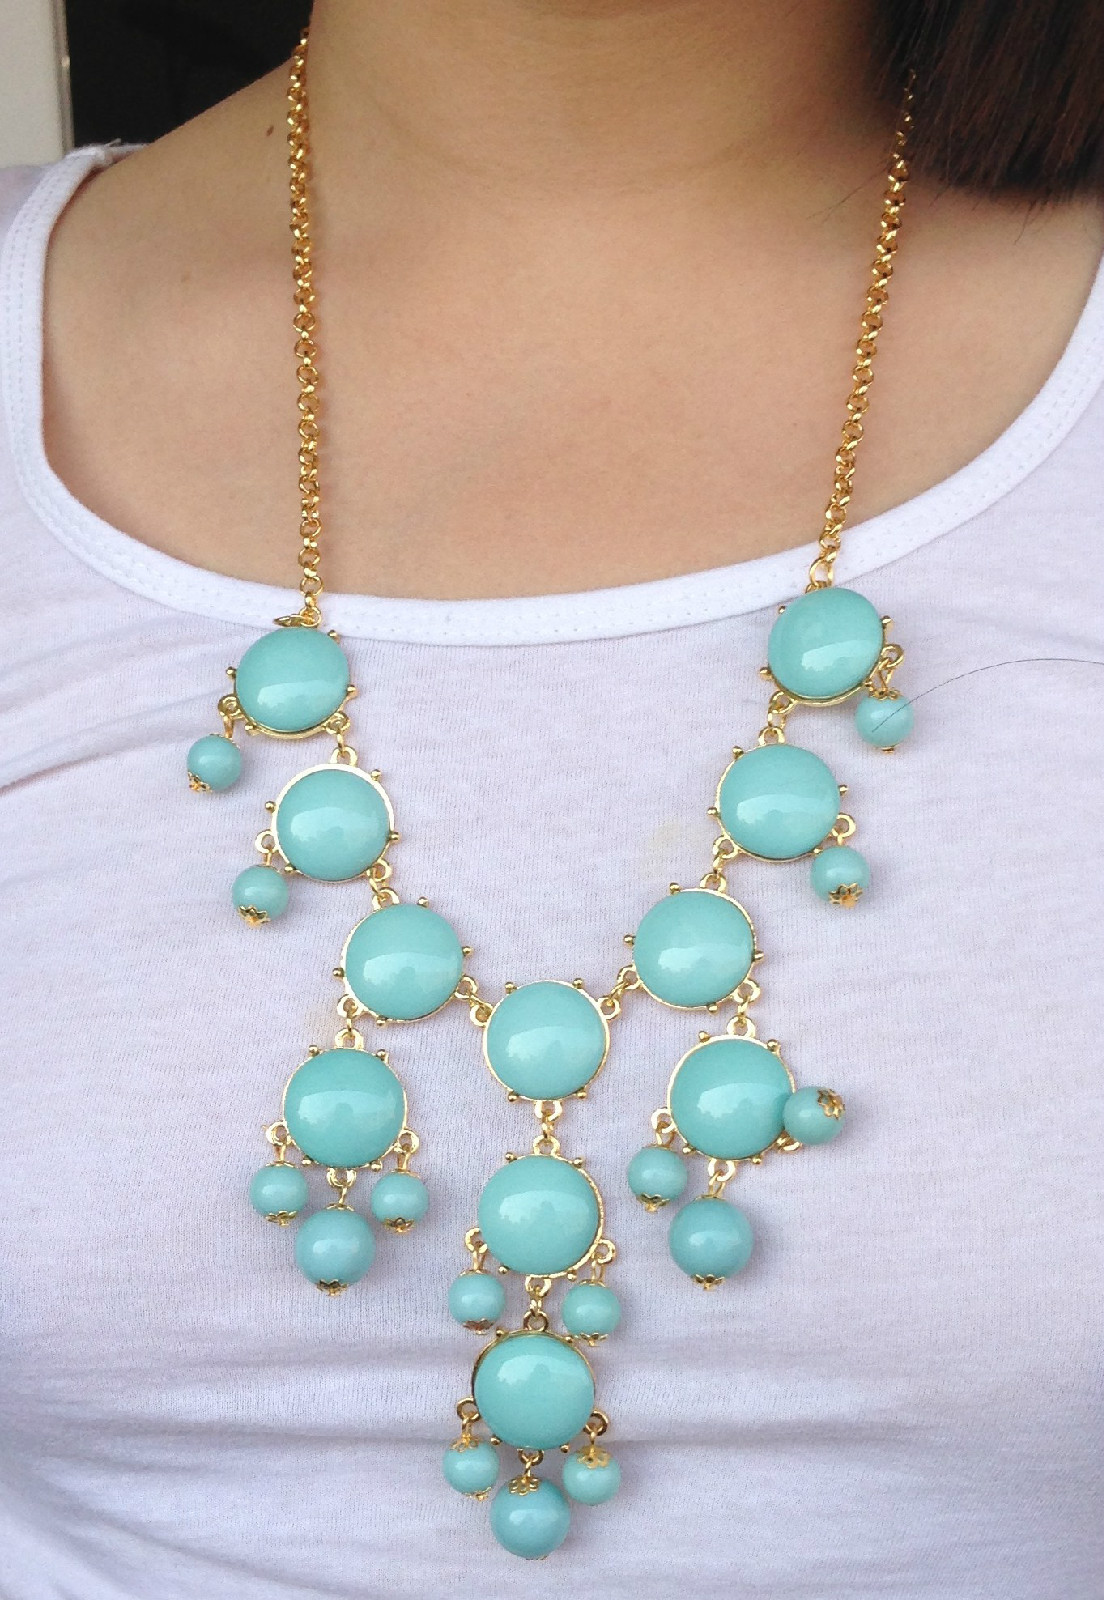 and for jewelry necklace hoops apparel sweeping trends earrings shoulder trend spring springsummer asymmetrical summer